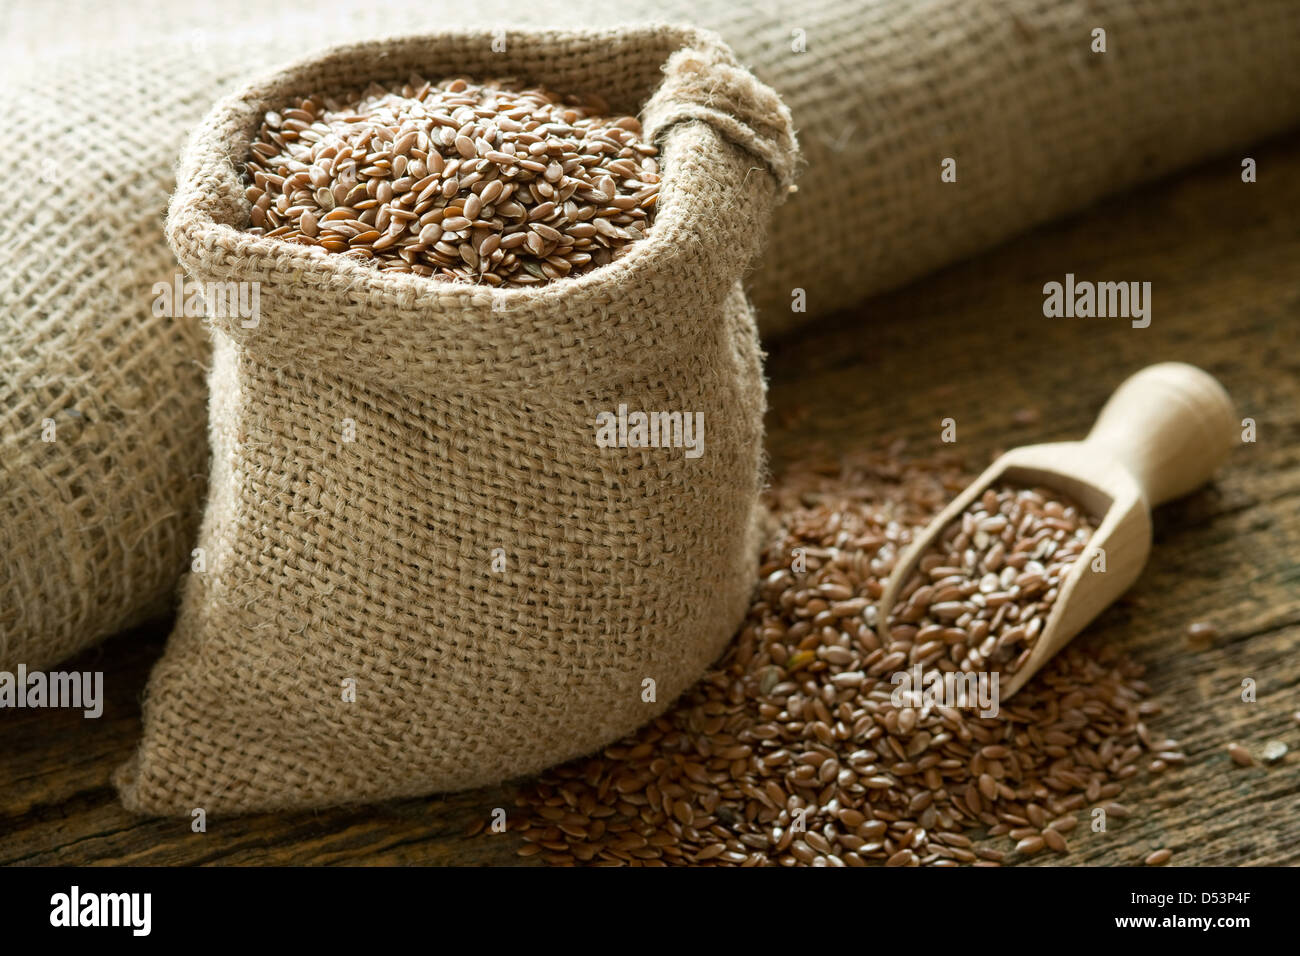 Flax seed in a burlap bag - Stock Image